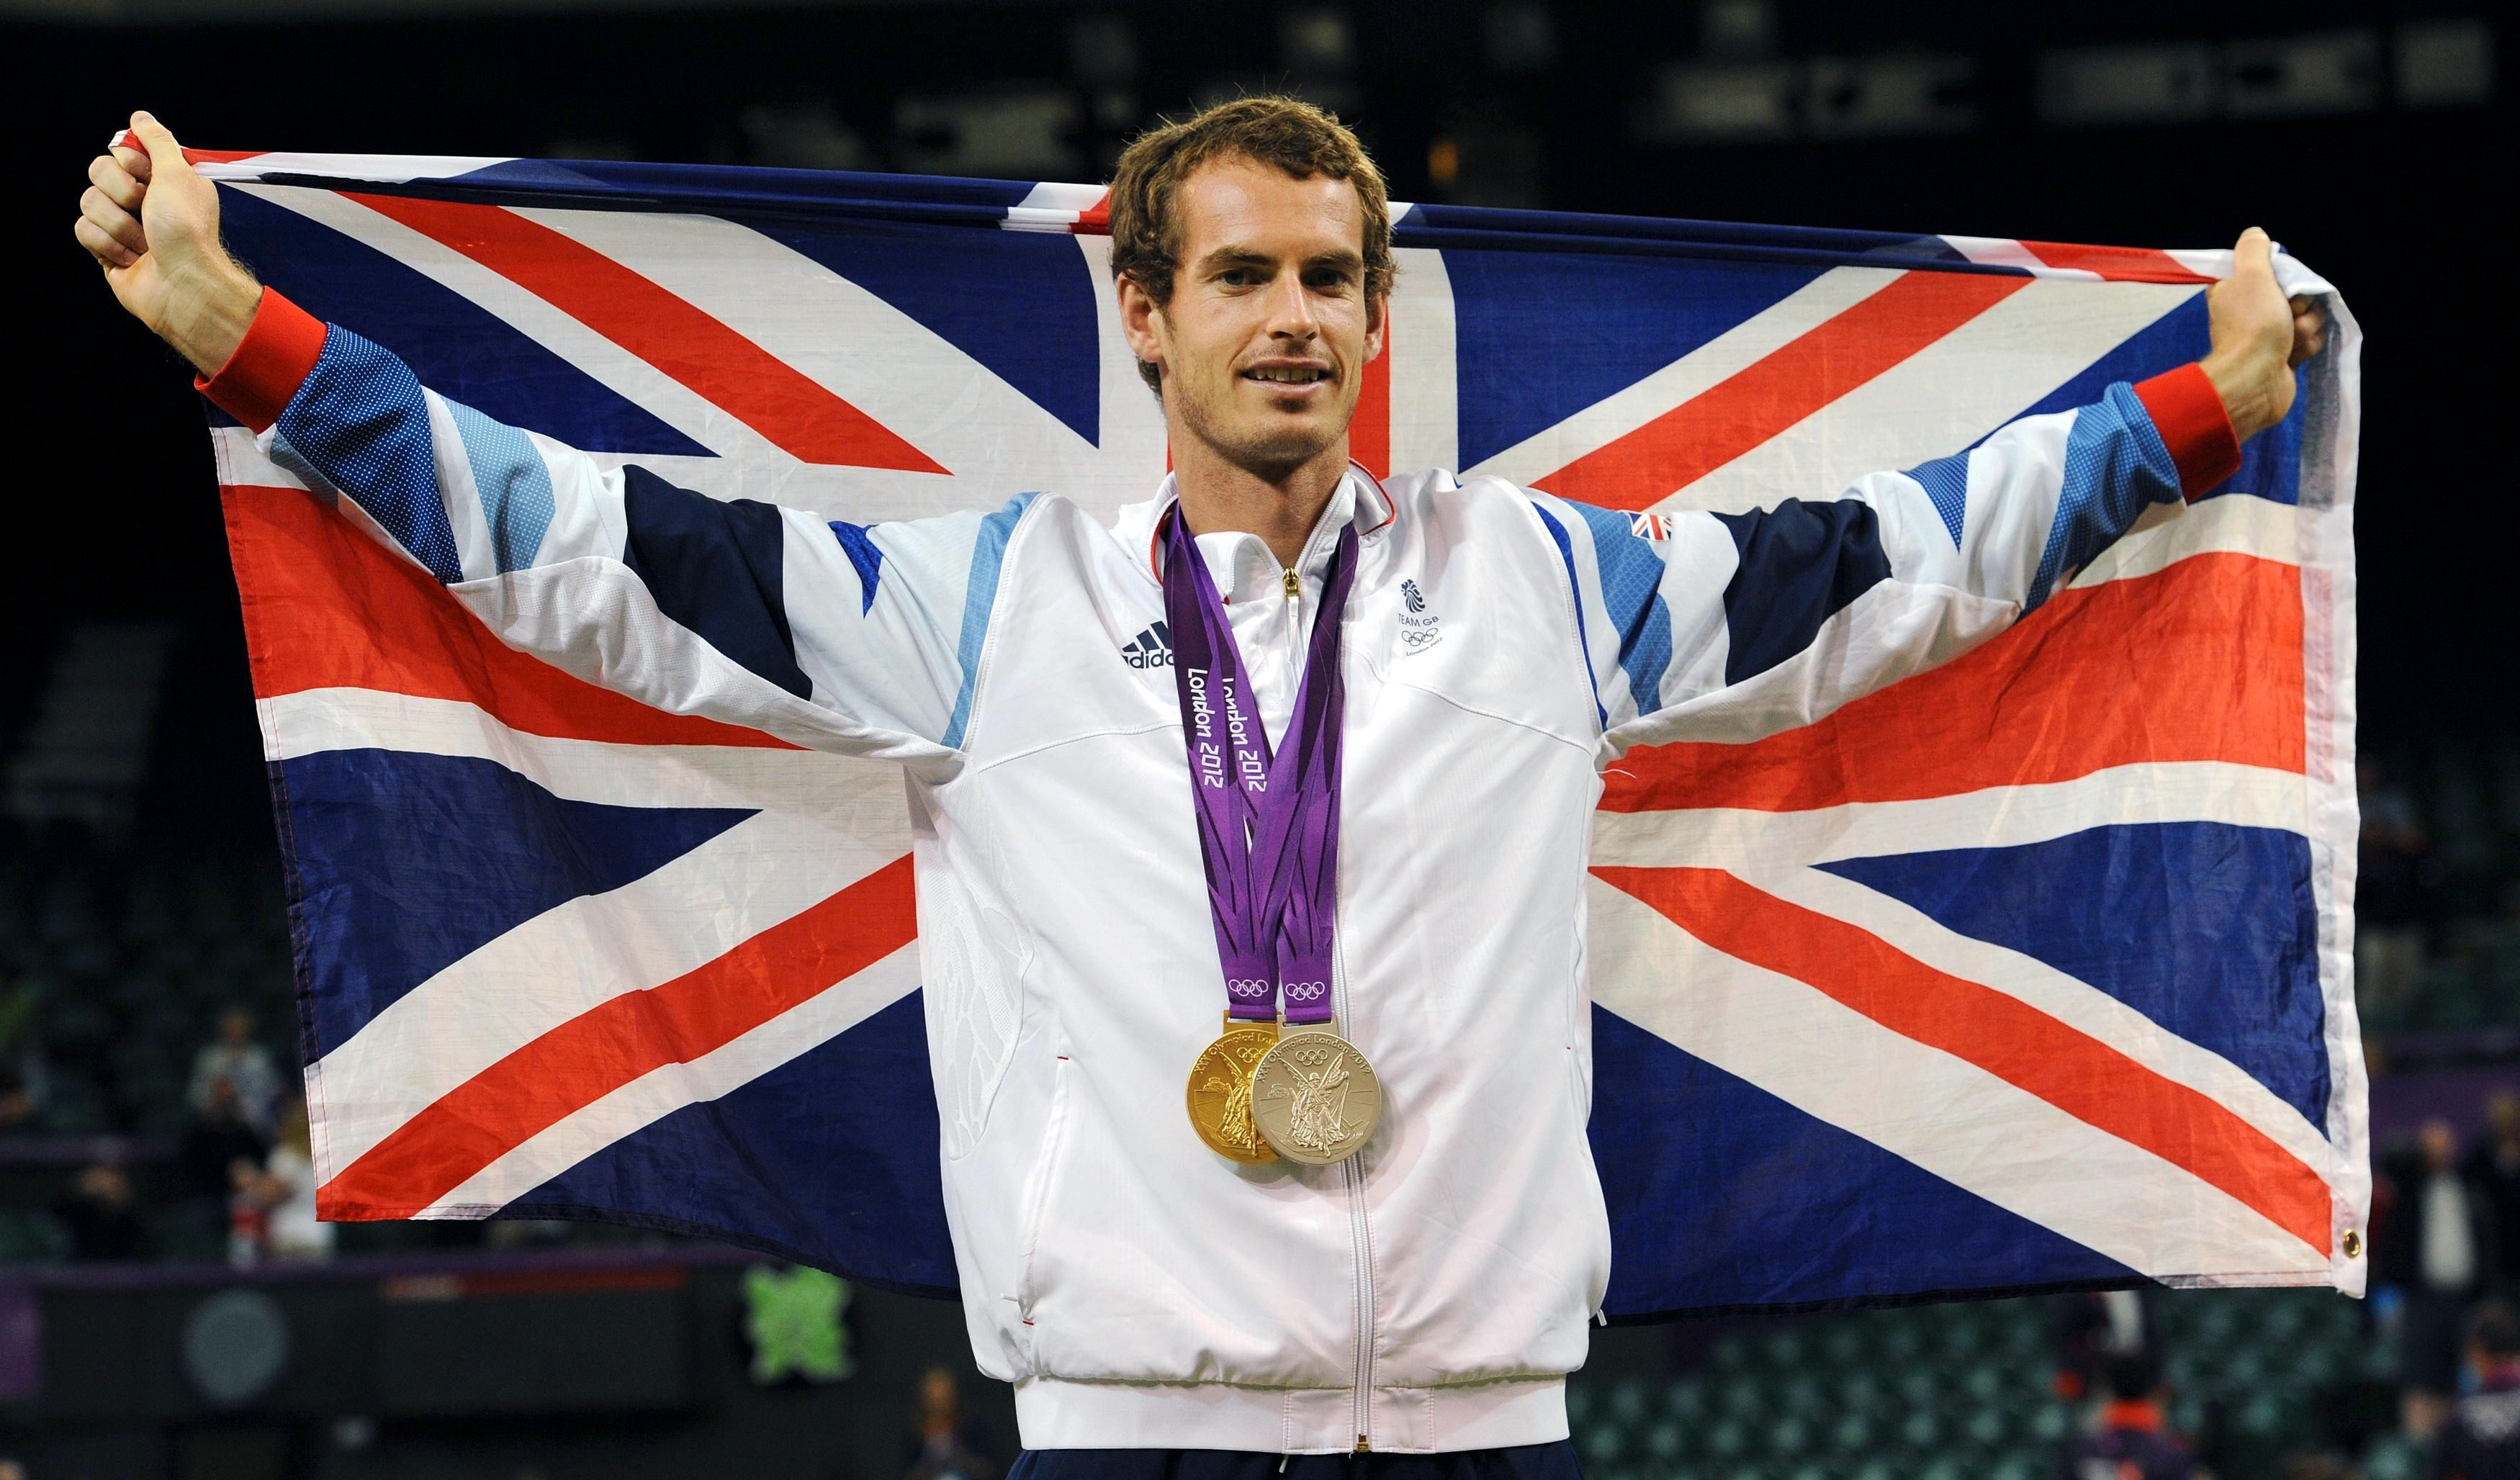 File photo dated 05/08/2012 of Great Britain's Andy Murray with his Olympic Gold and Silver Medals at Wimbledon.